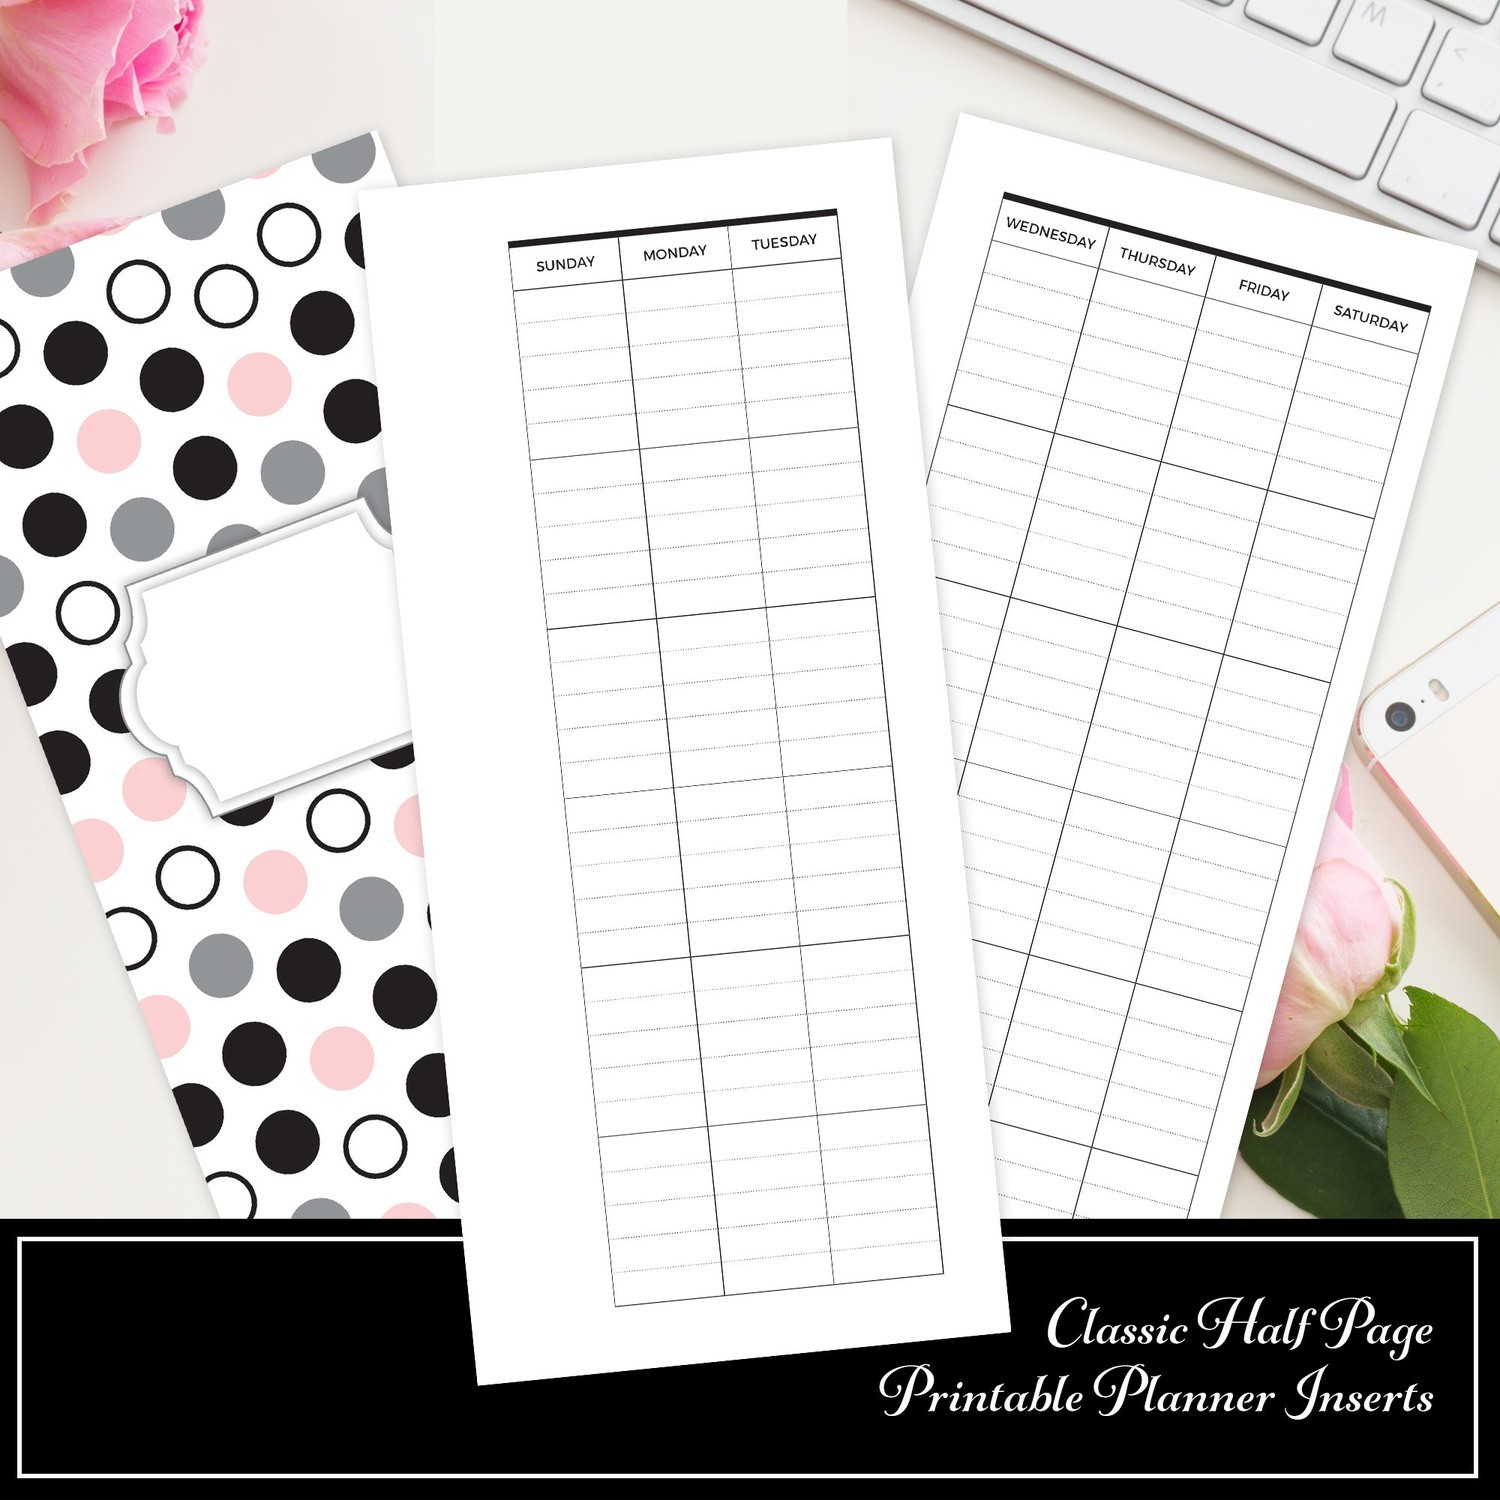 CLASSIC HALF SHEET - Lined Undated Monthly Printable Planner Insert